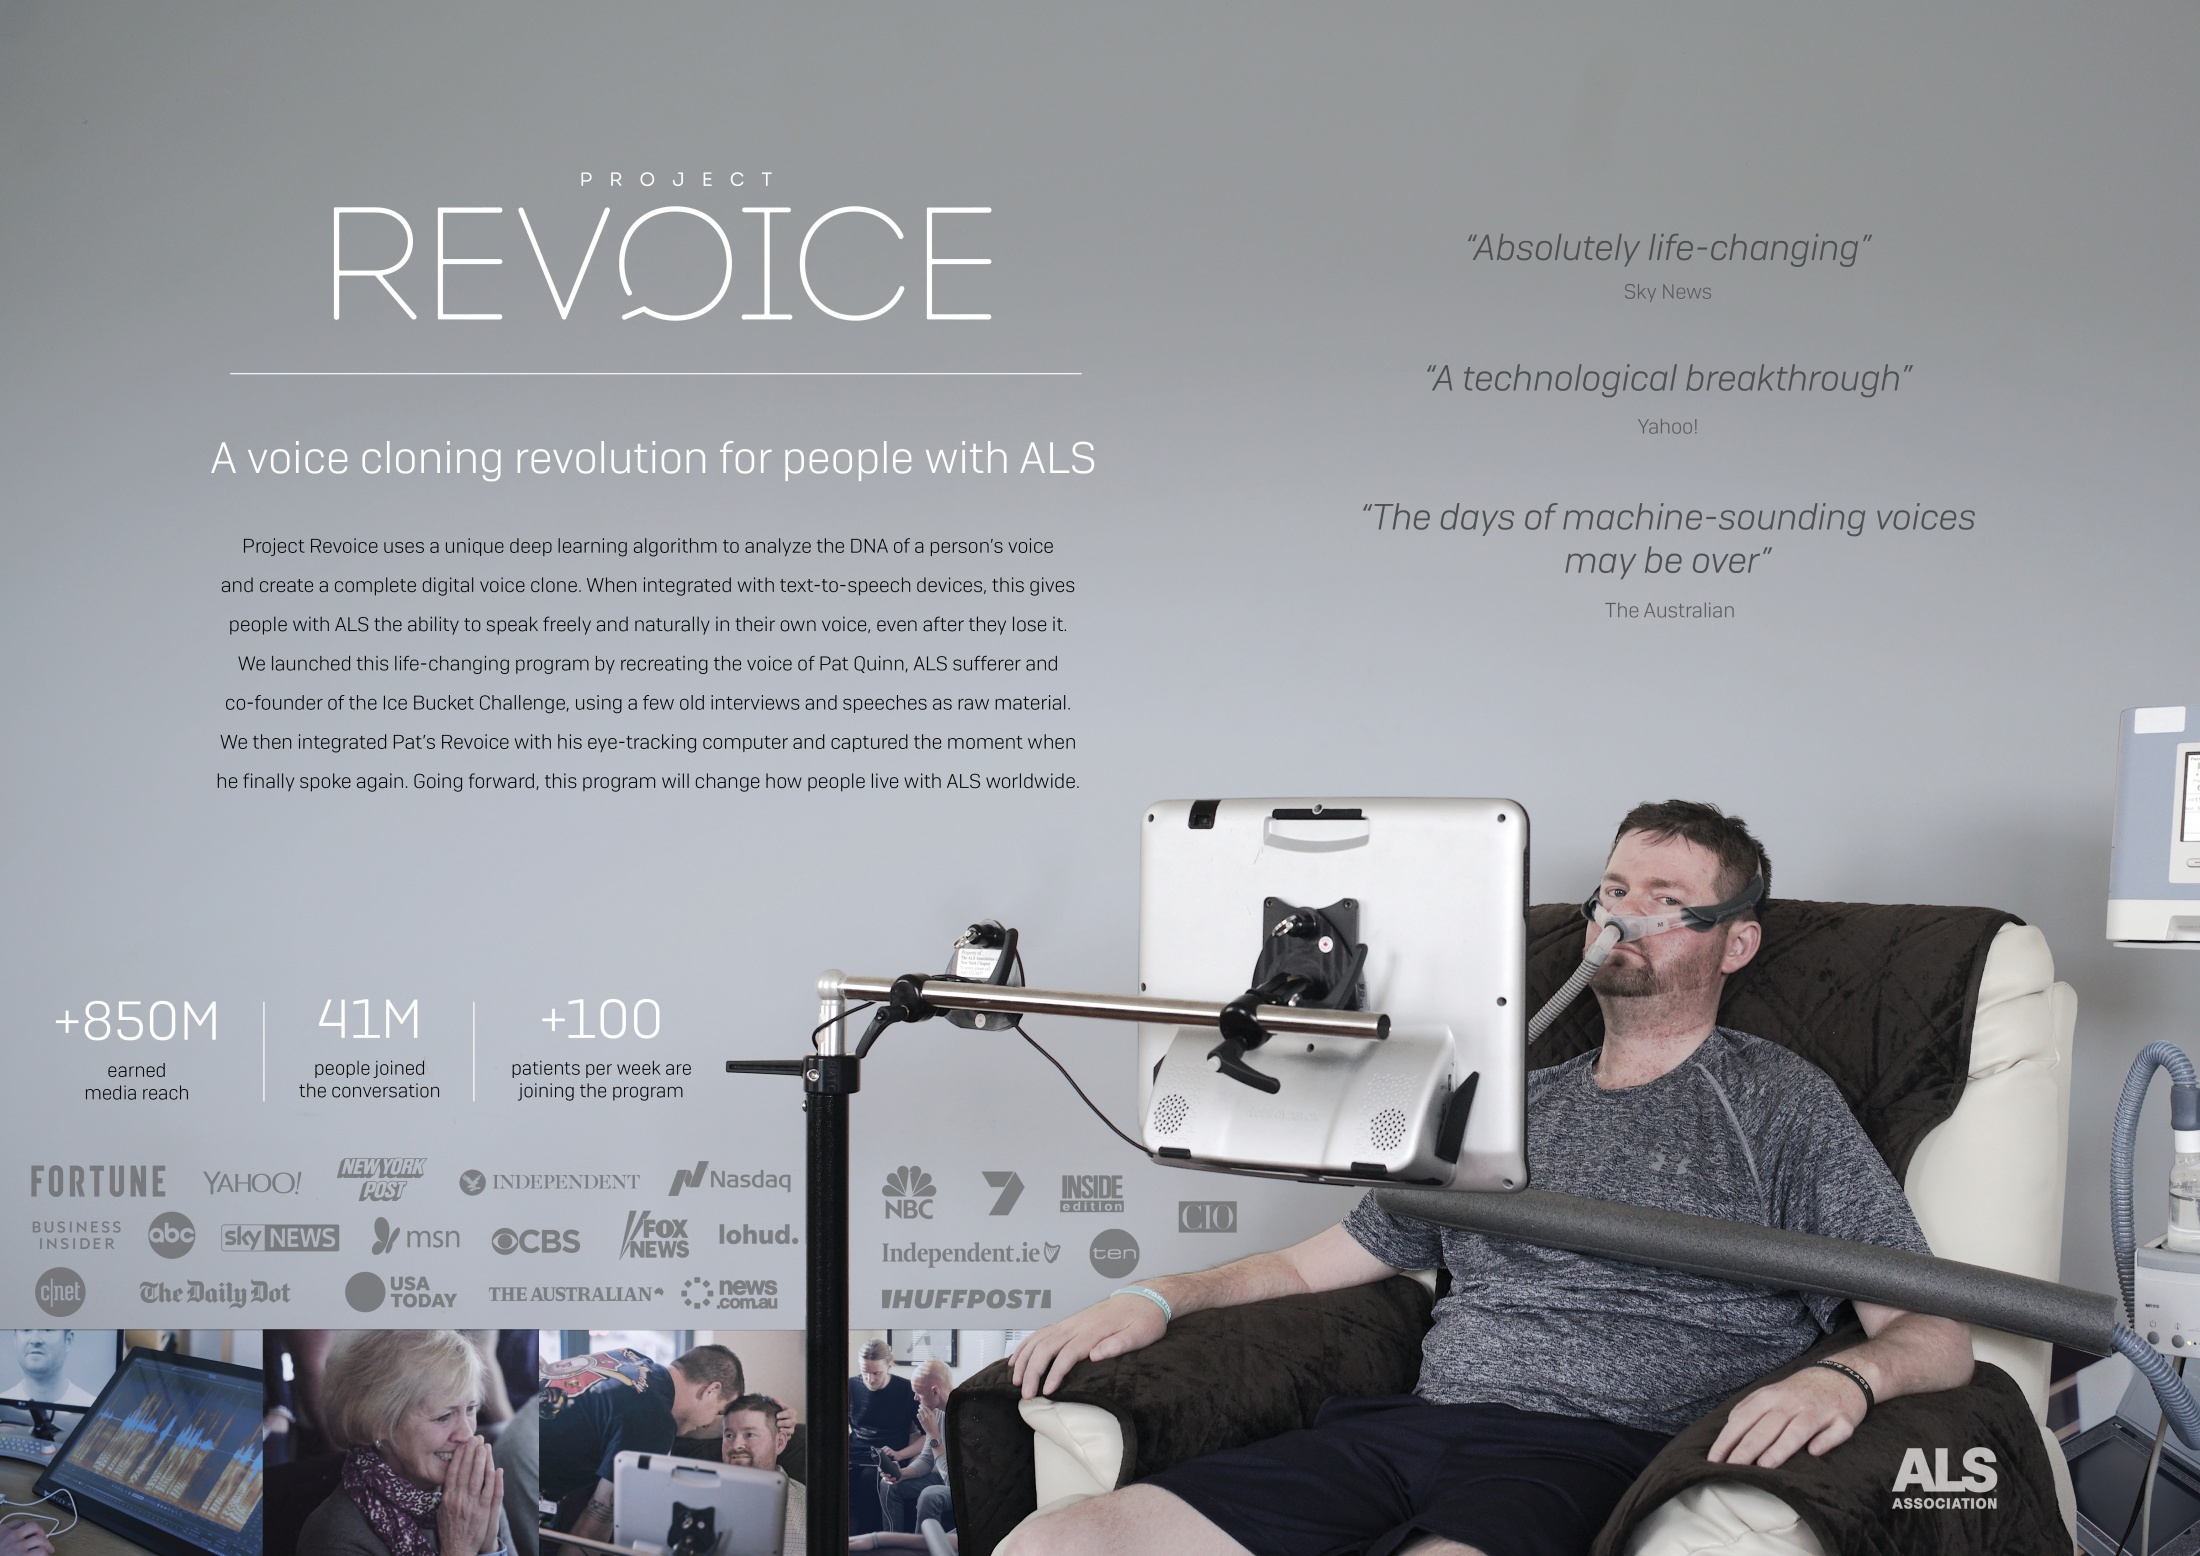 project-revoice-board.jpg